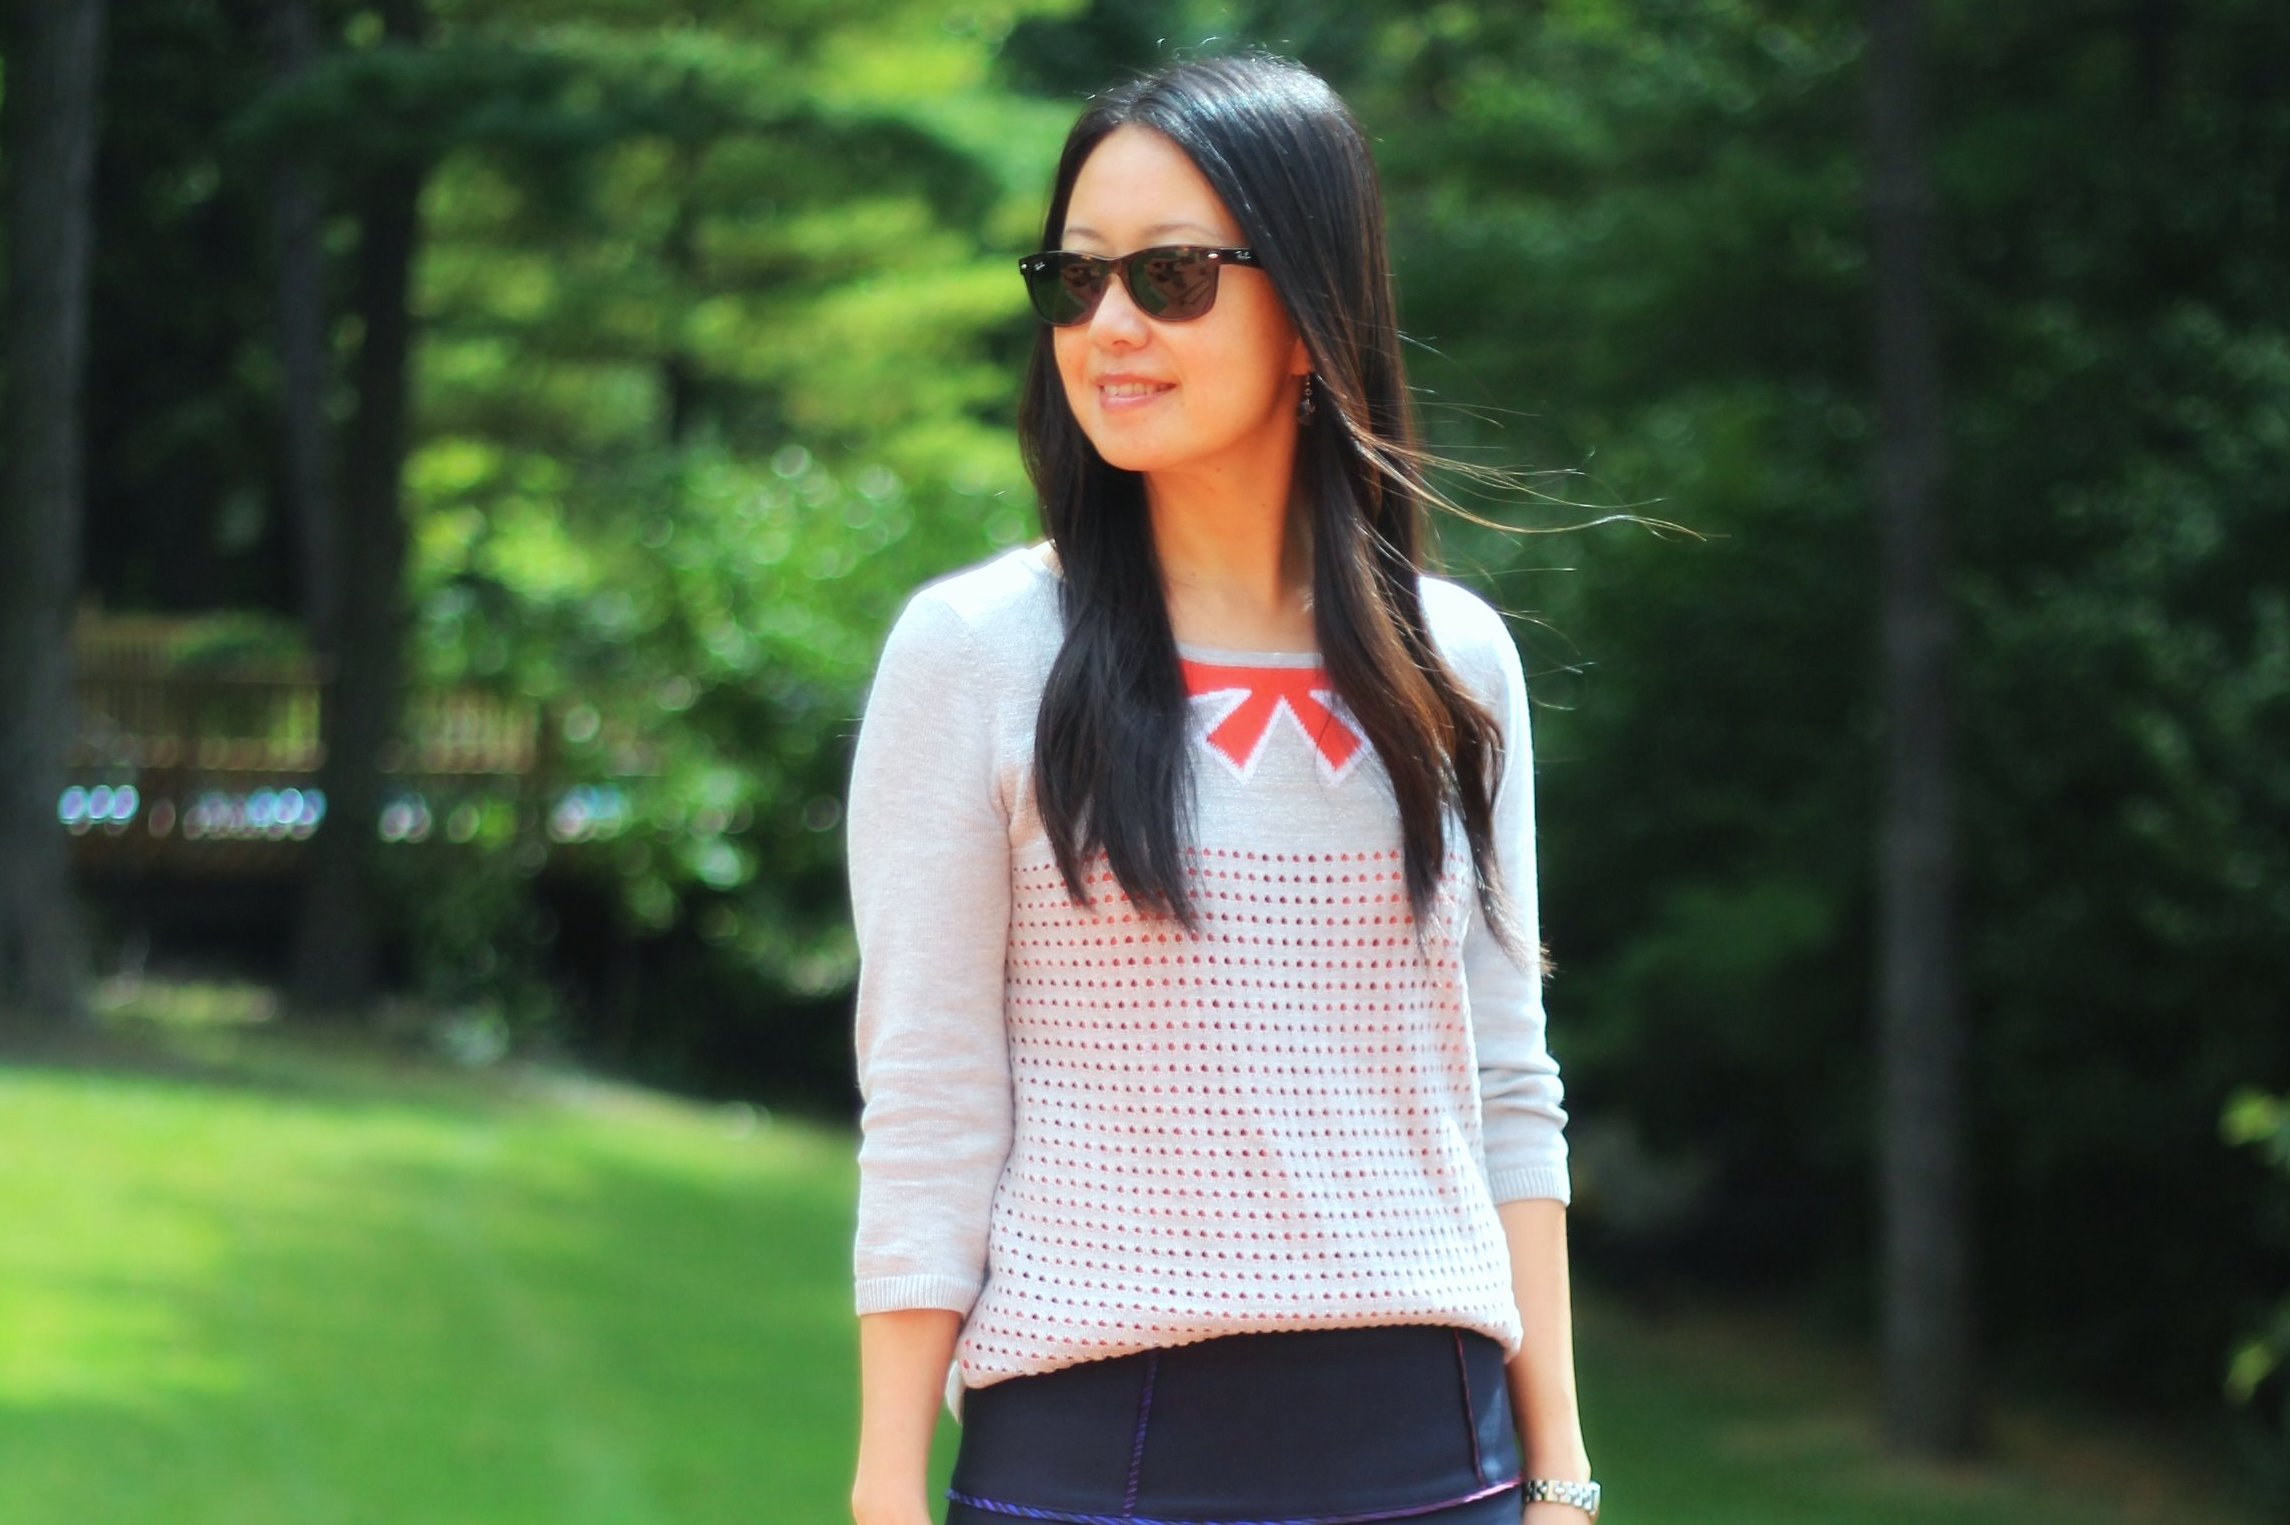 Outfit Highlight: The 40-Year-Old School Girl?